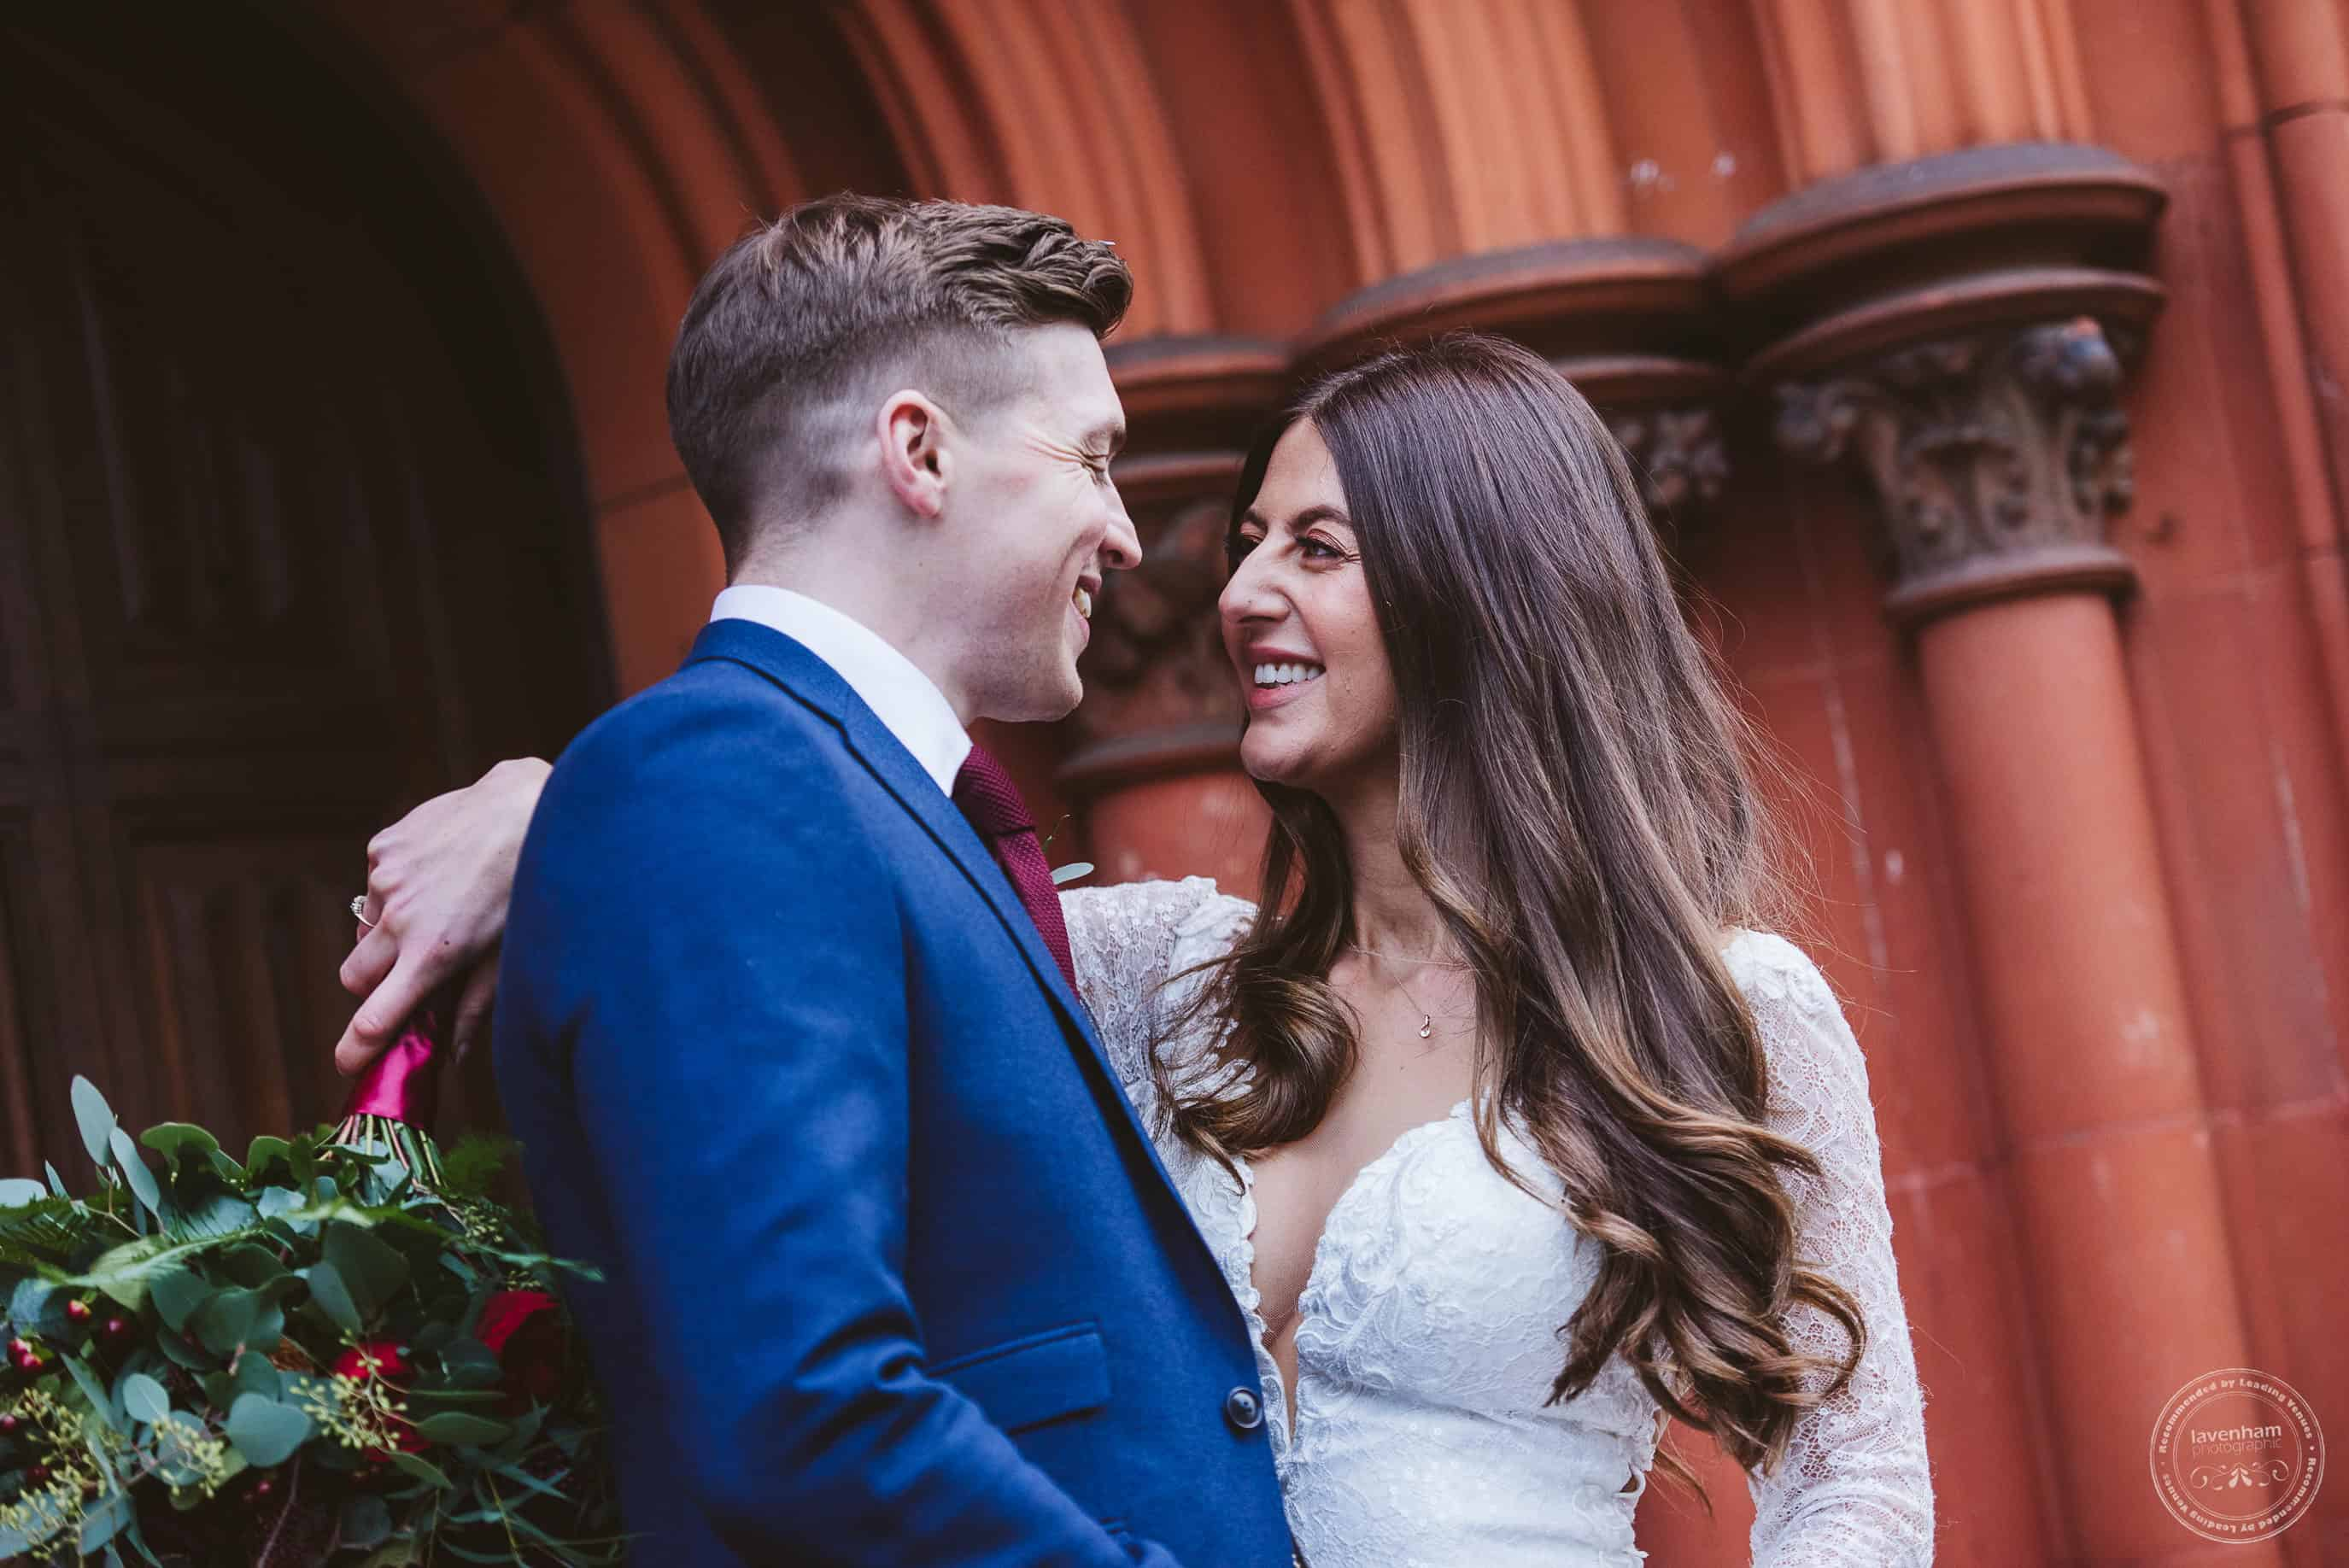 301119 Holmewood Hall Wedding Photographer 140